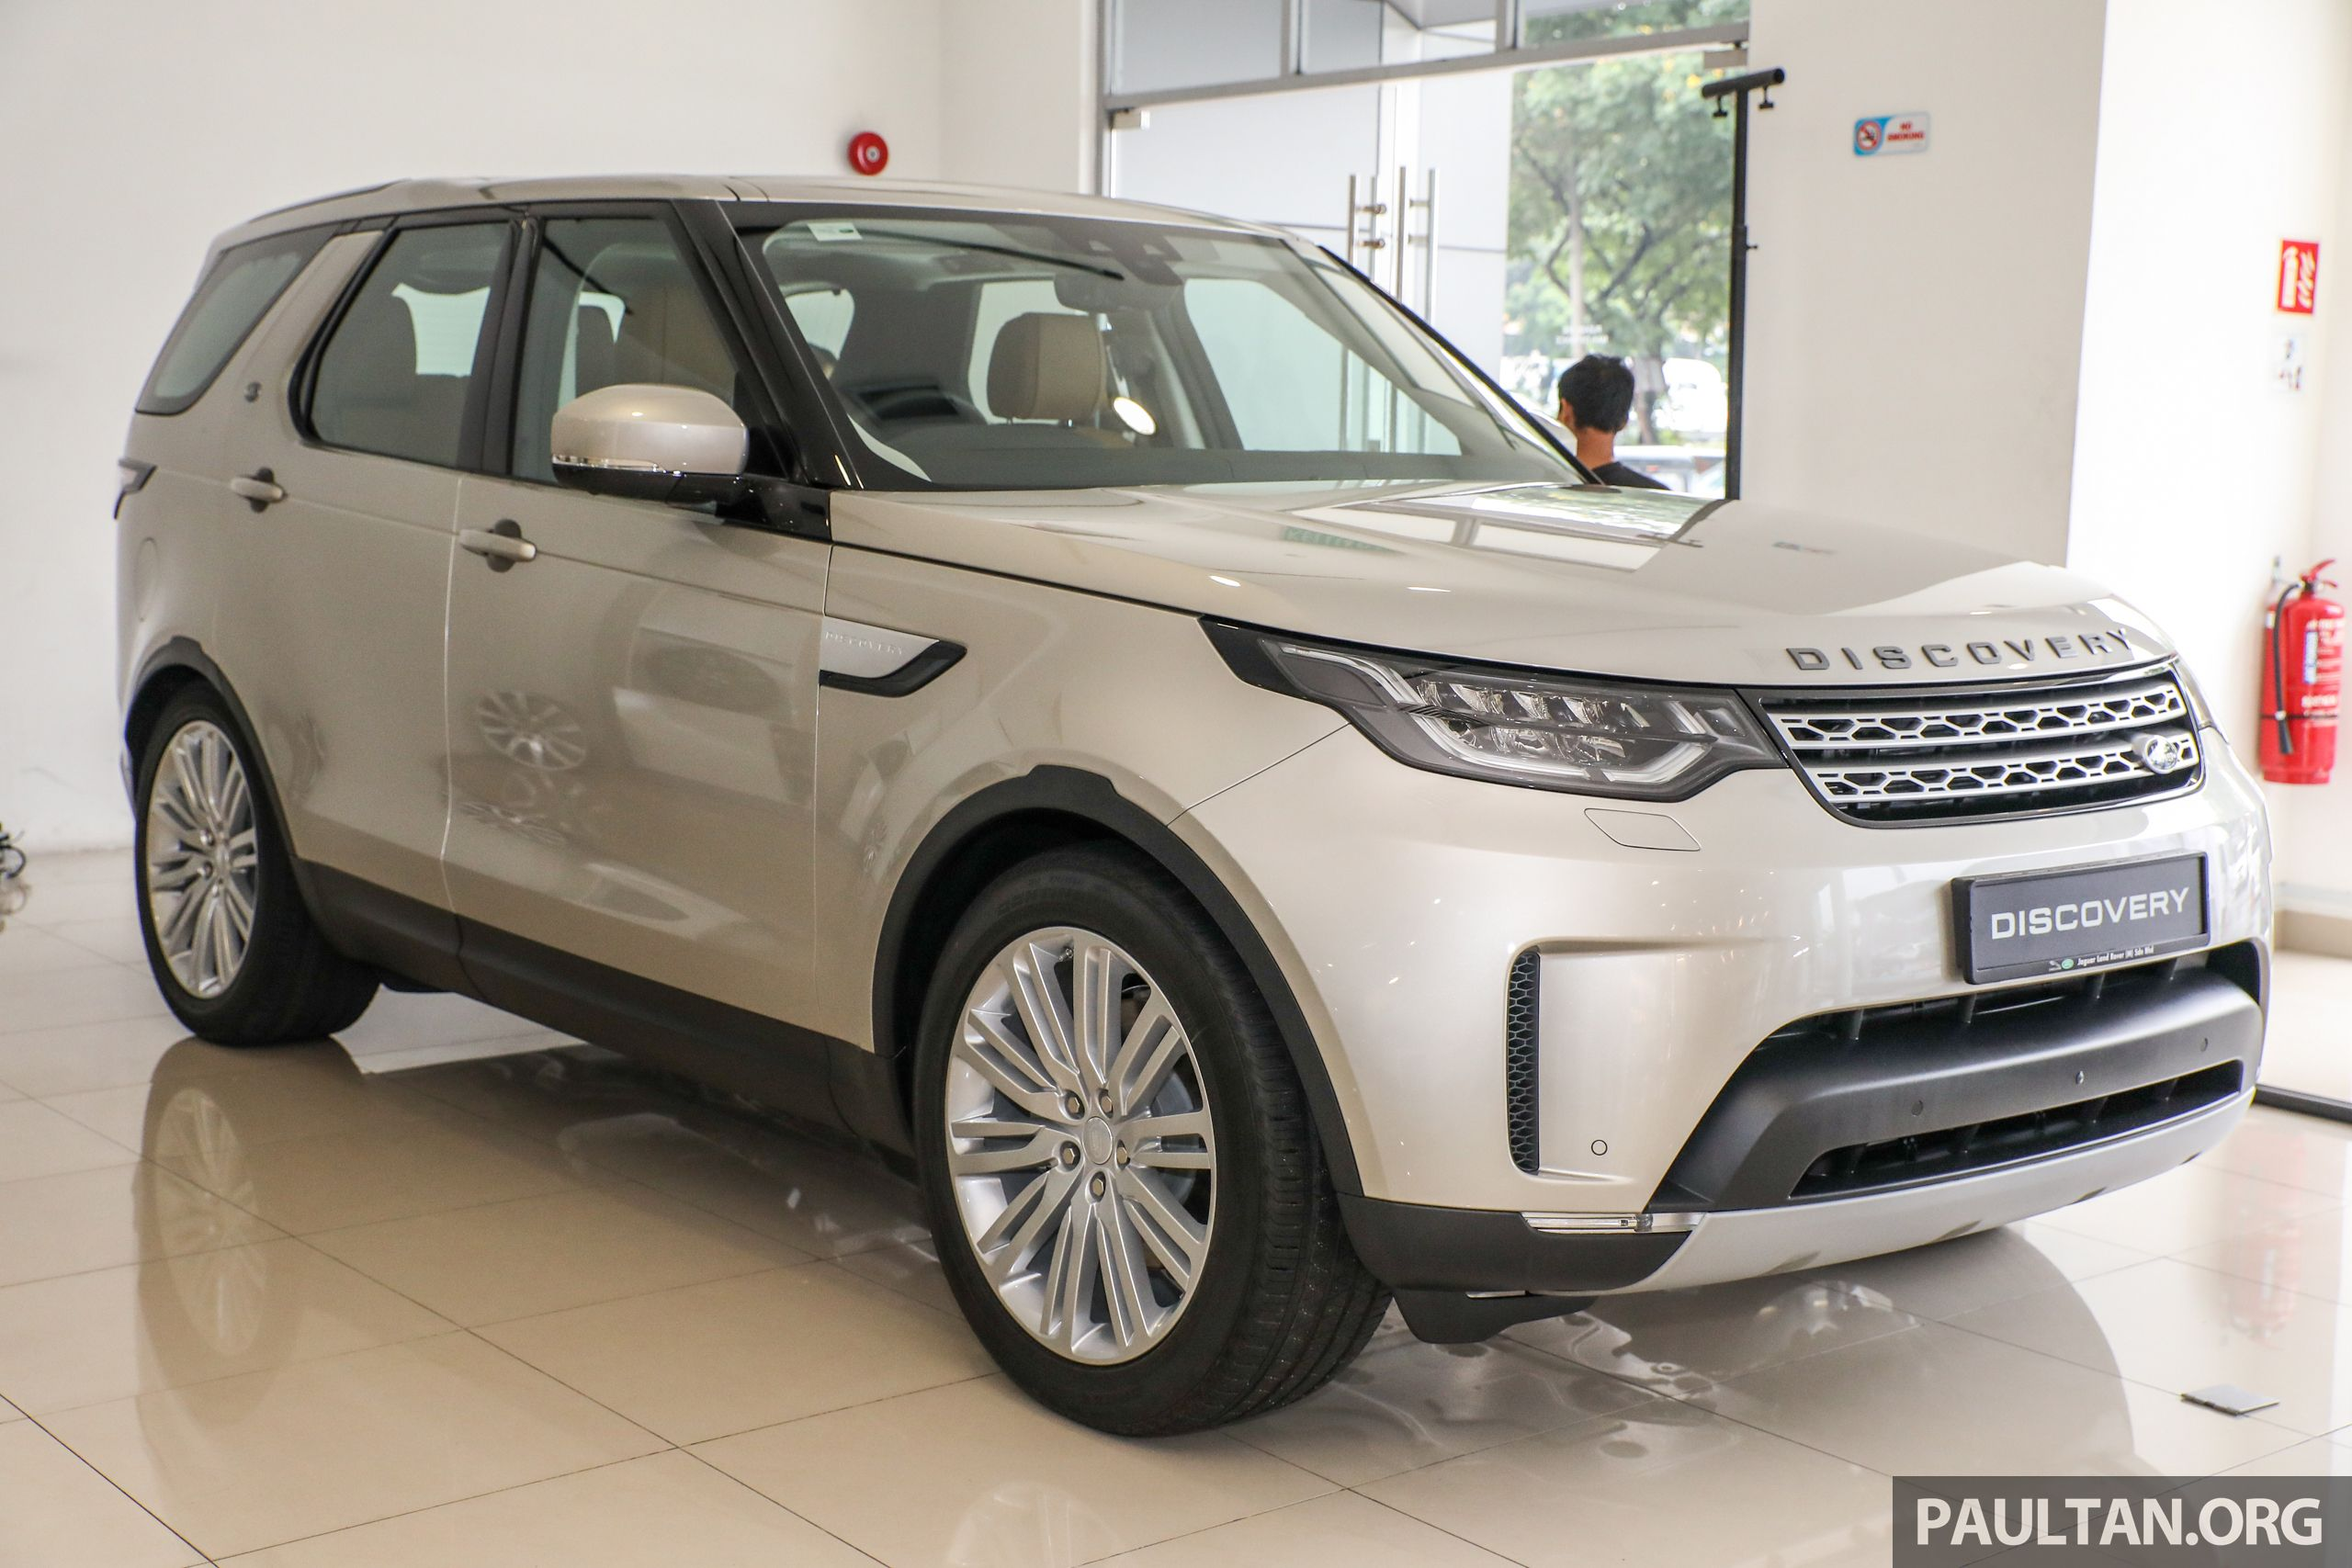 Jaguar Land Rover Malaysia Has Officially Introduced The New Fifth Generation L462 Land Rover Discovery In Th Land Rover Land Rover Discovery Jaguar Land Rover